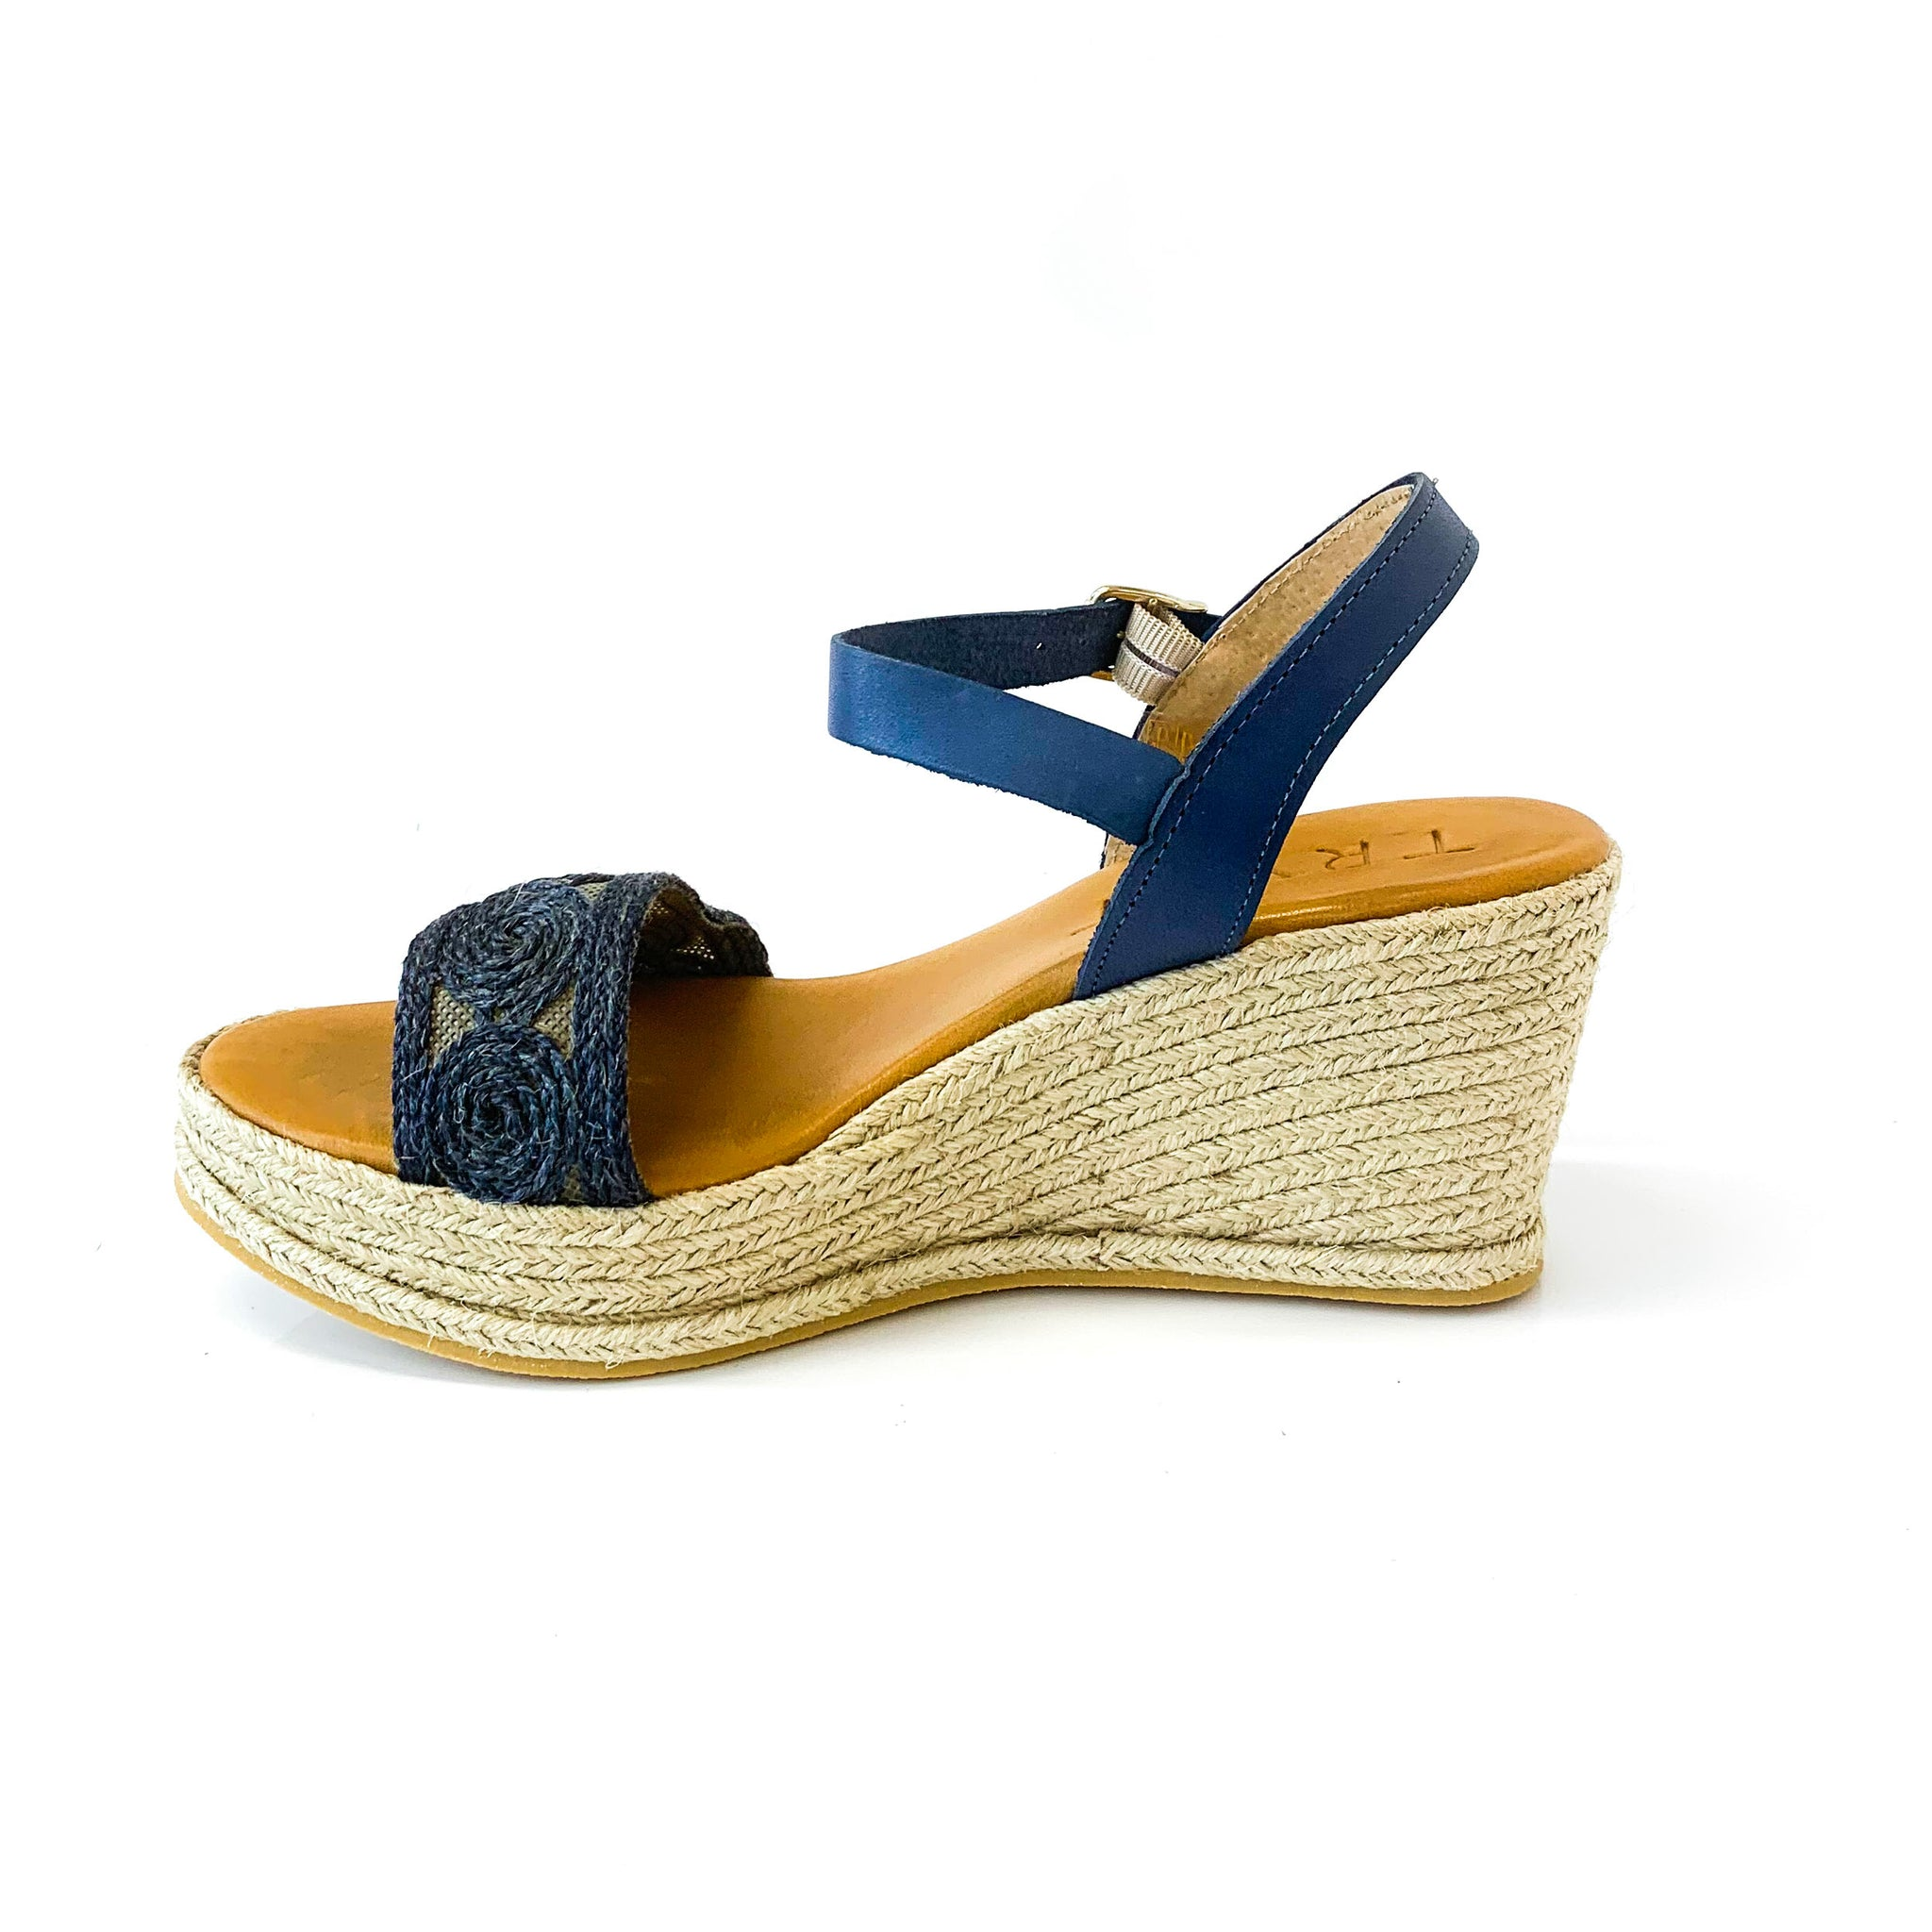 ISMA | Wedge Sandals with Blue Straps - TrystShoes